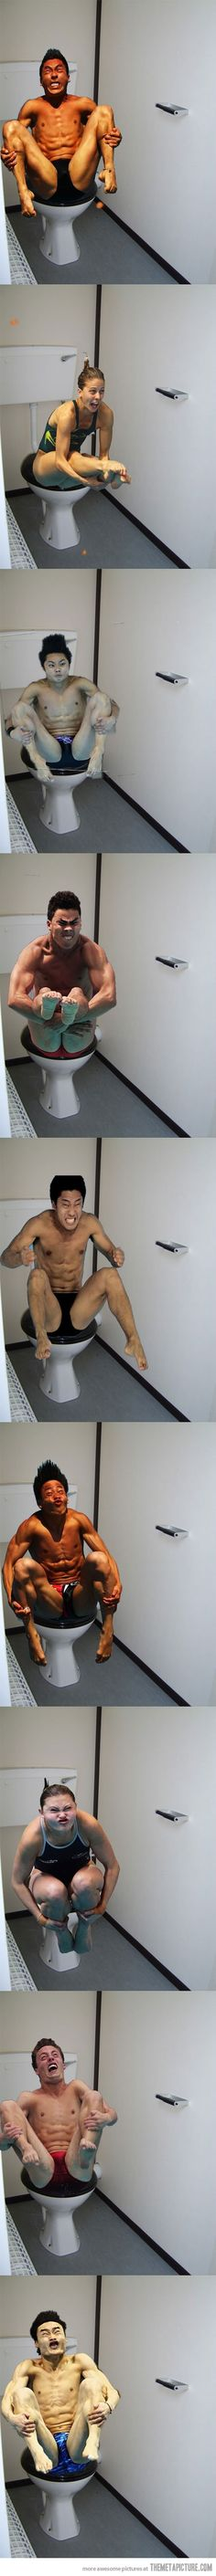 Olympic divers on the toilet… Seriously about peed my pants laughing so hard at these!